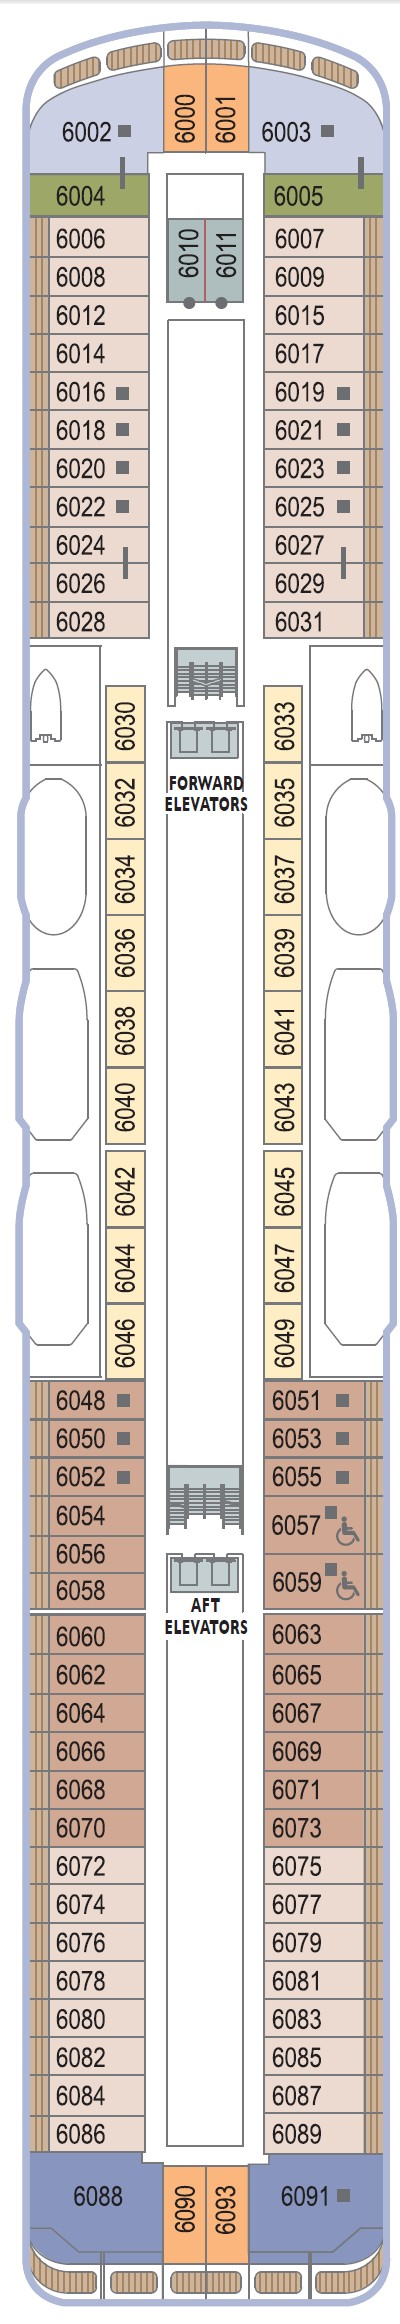 Azamara Journey Deck 6 layout